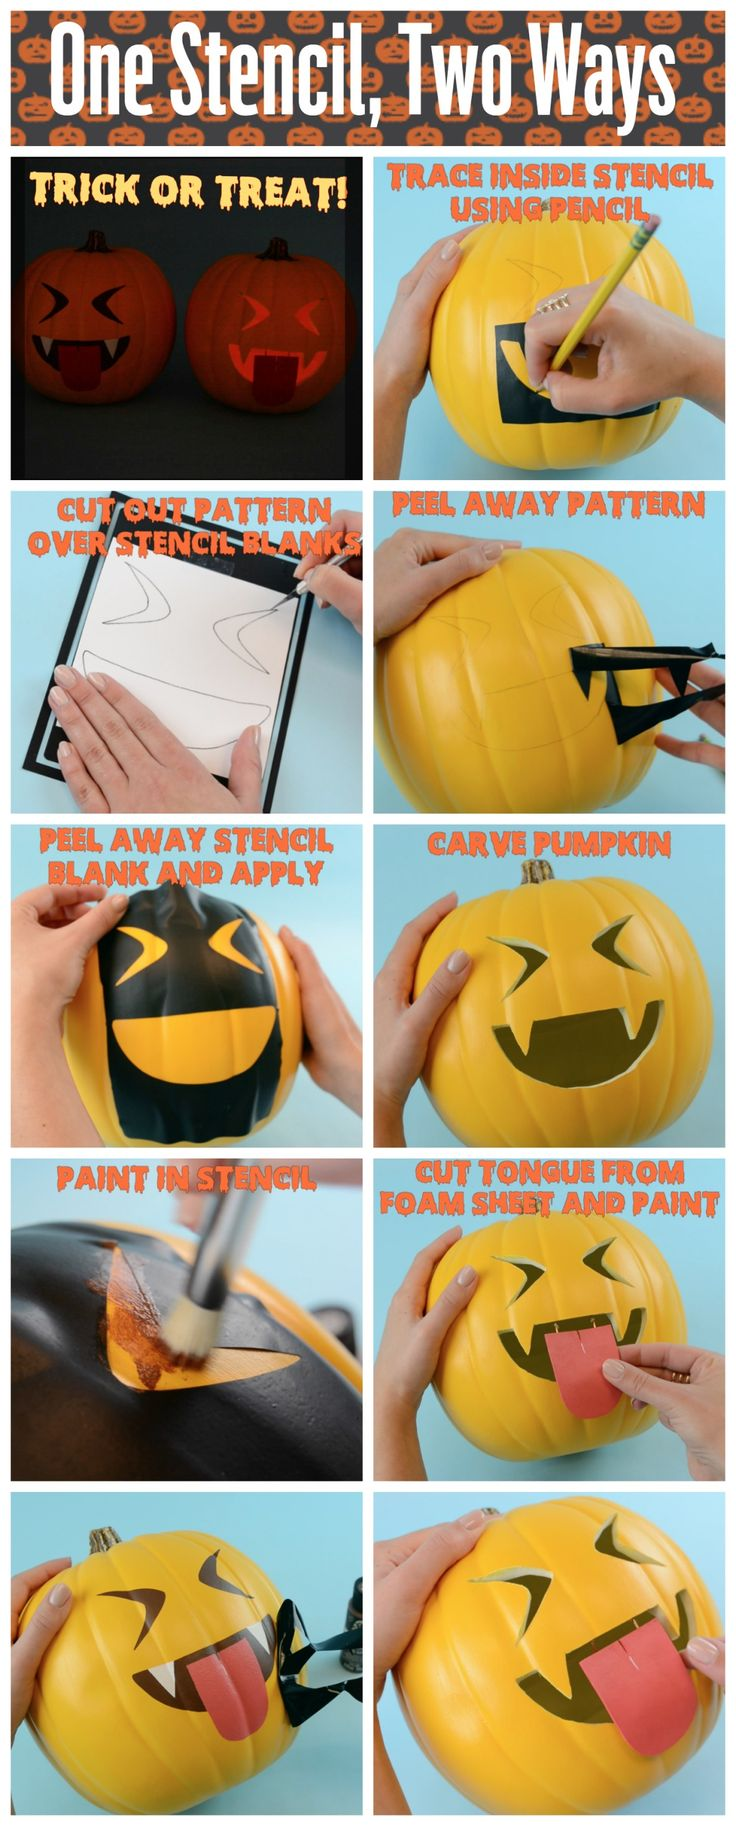 DIY Vampire Emoji Pumpkin: Use a stencil TWO different ways to create a cute and kid-friendly no carve pumpkin OR a spooky jack-o-lantern. Download free printable templates to get you started!